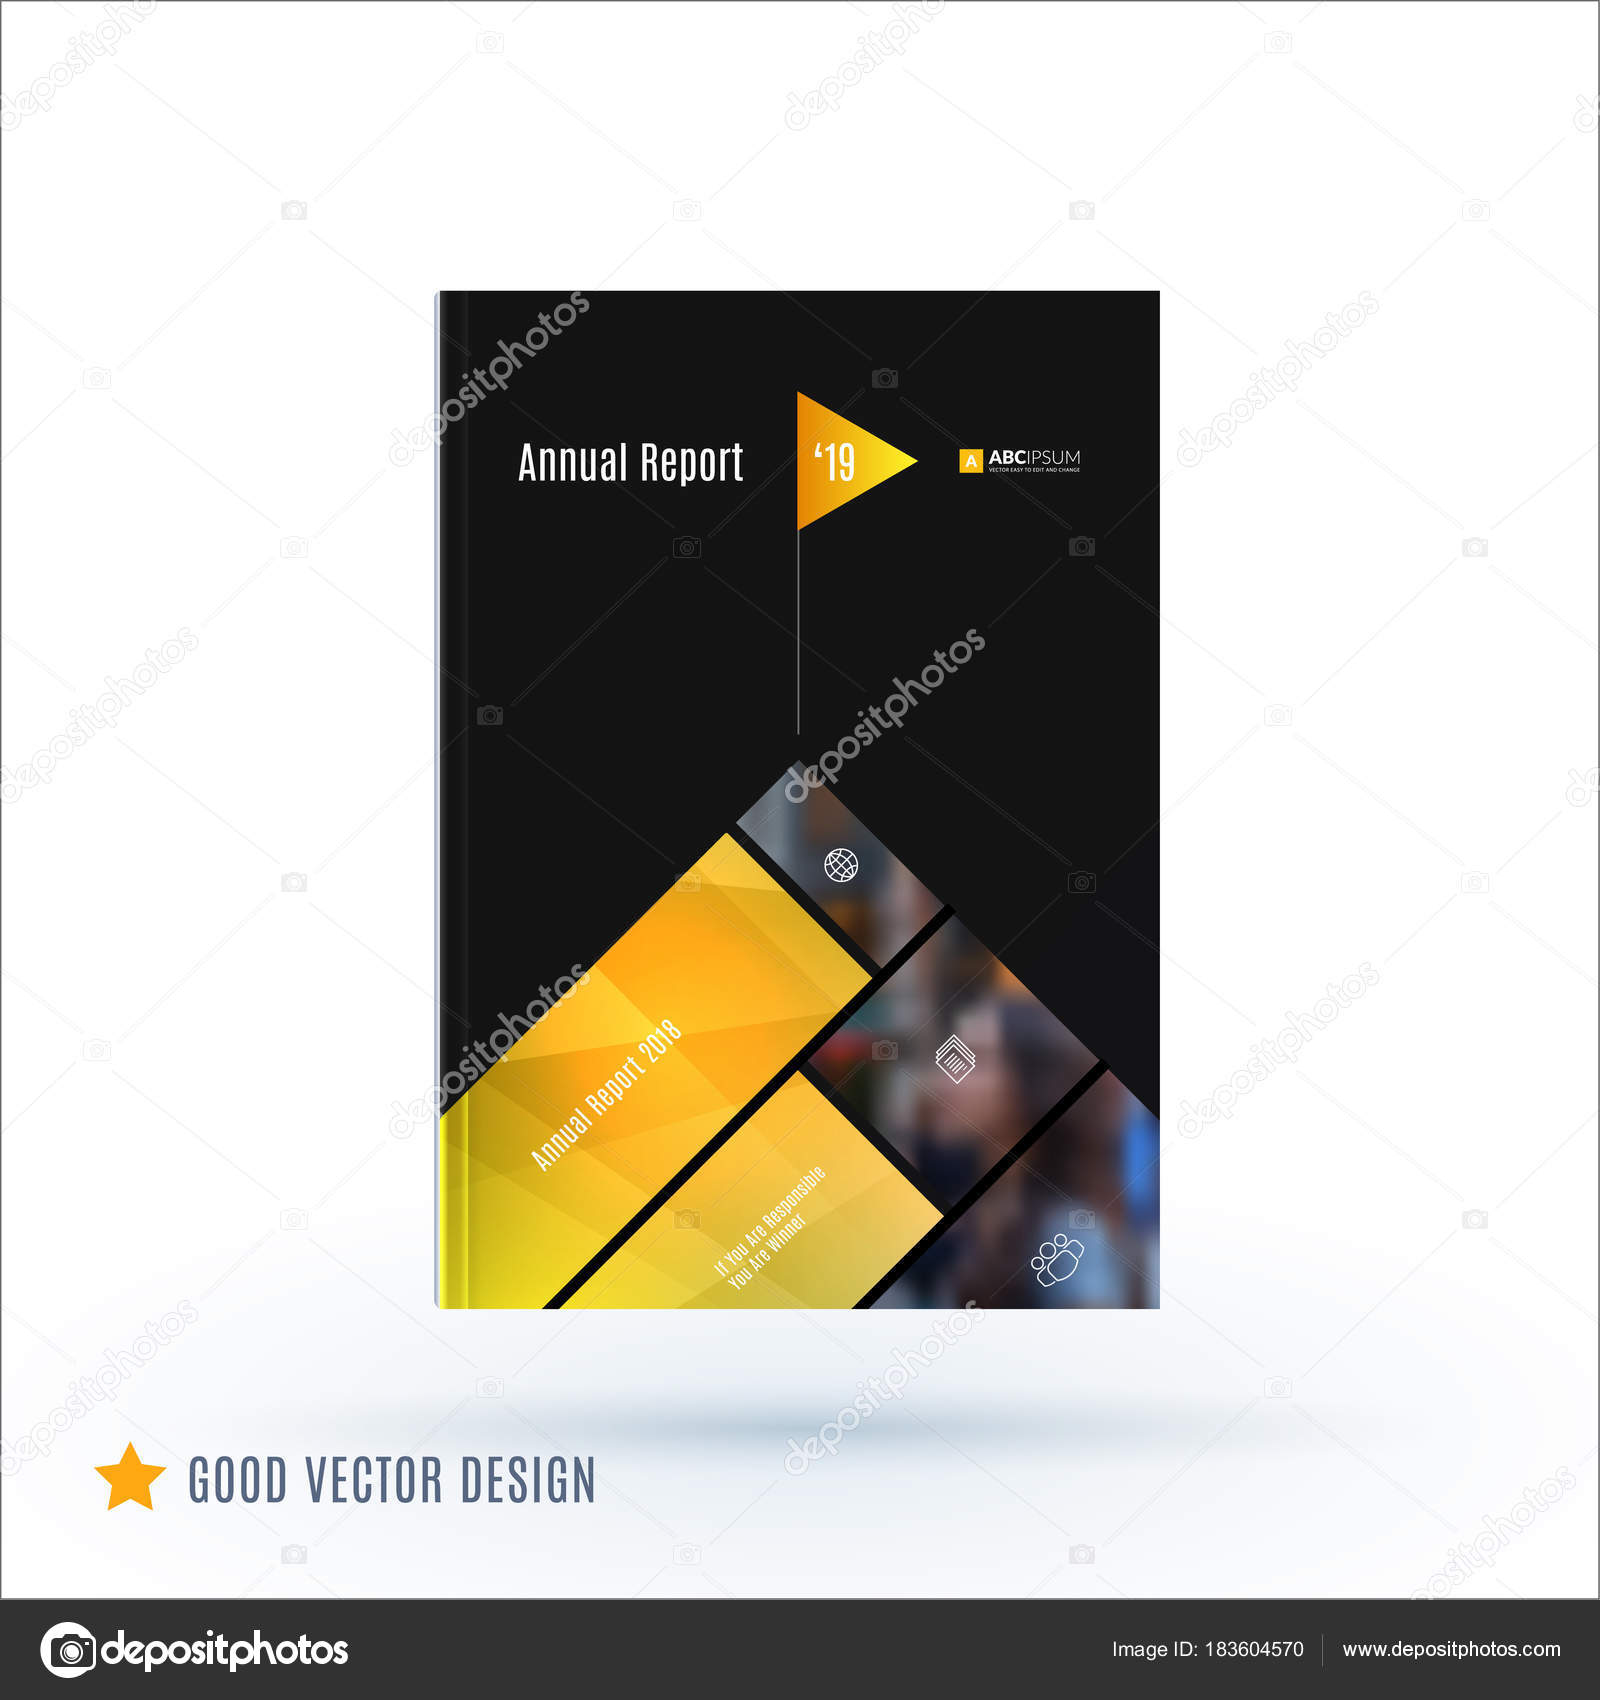 Design Of Brochure Abstract Annual Report Cover Modern Layout Flyer In A4 With Trendy Yellow Black Elements Shapes For Business Printing Advertisement